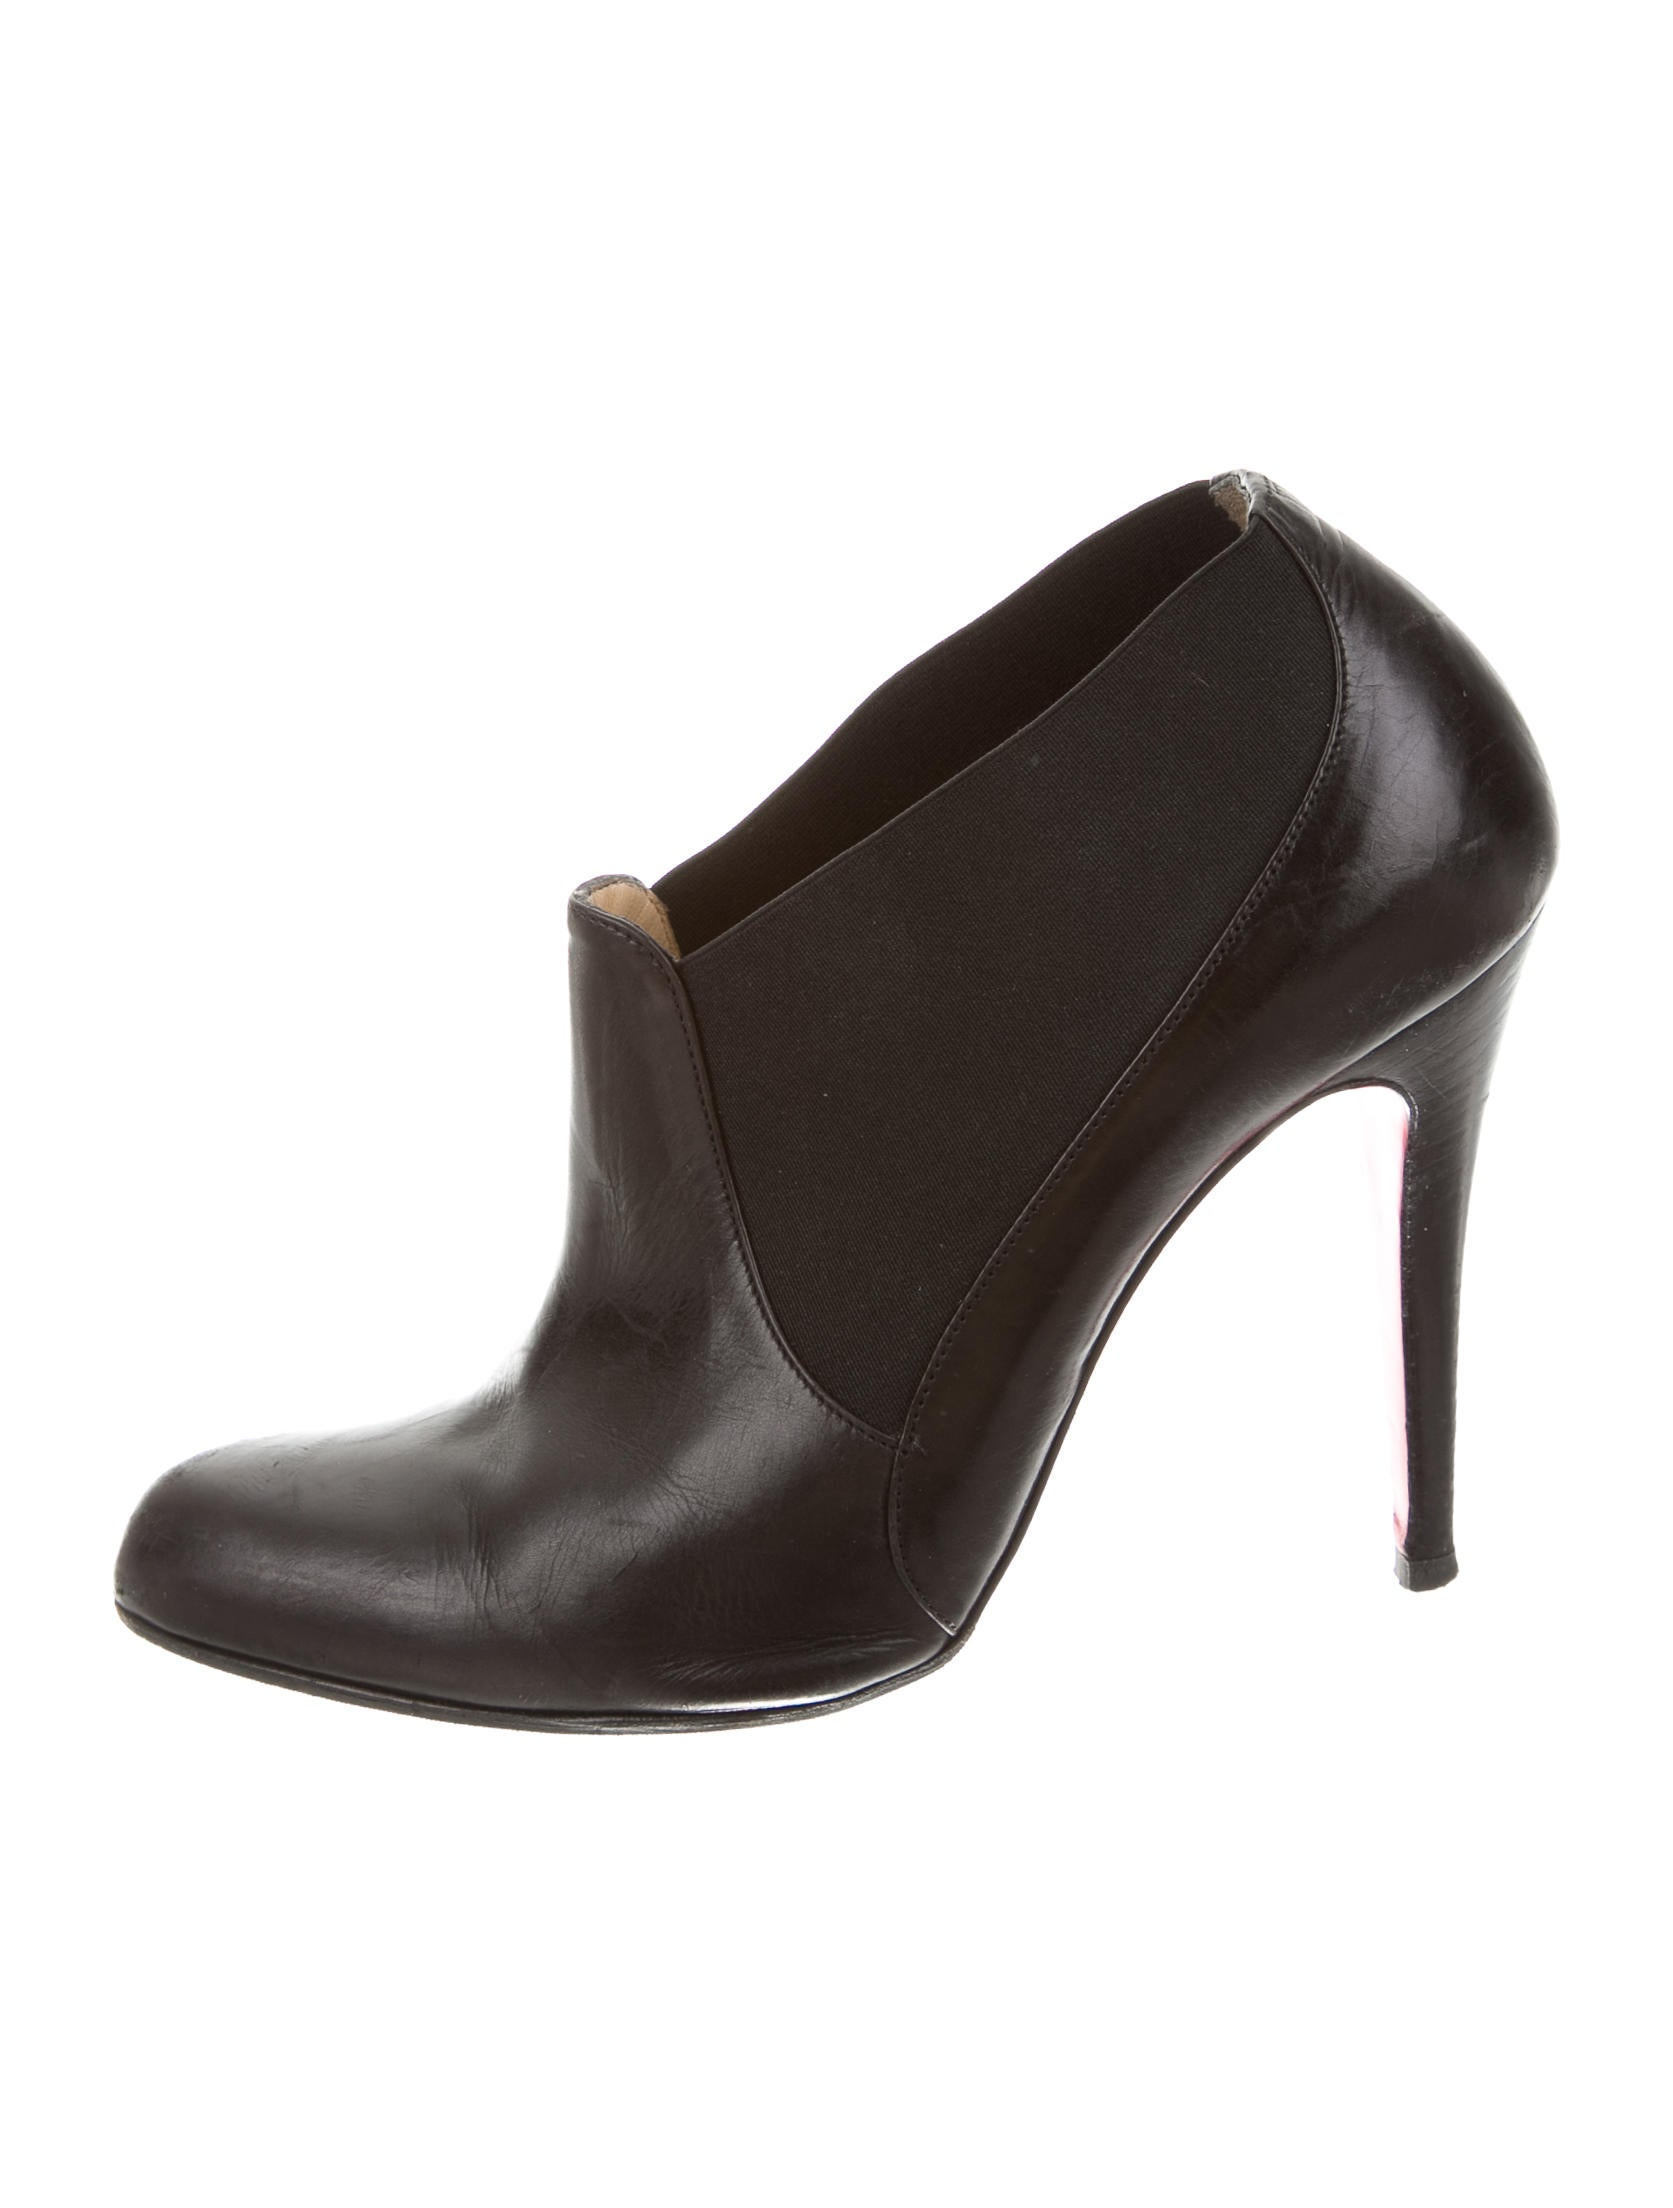 christian louboutin leather pointed toe booties shoes